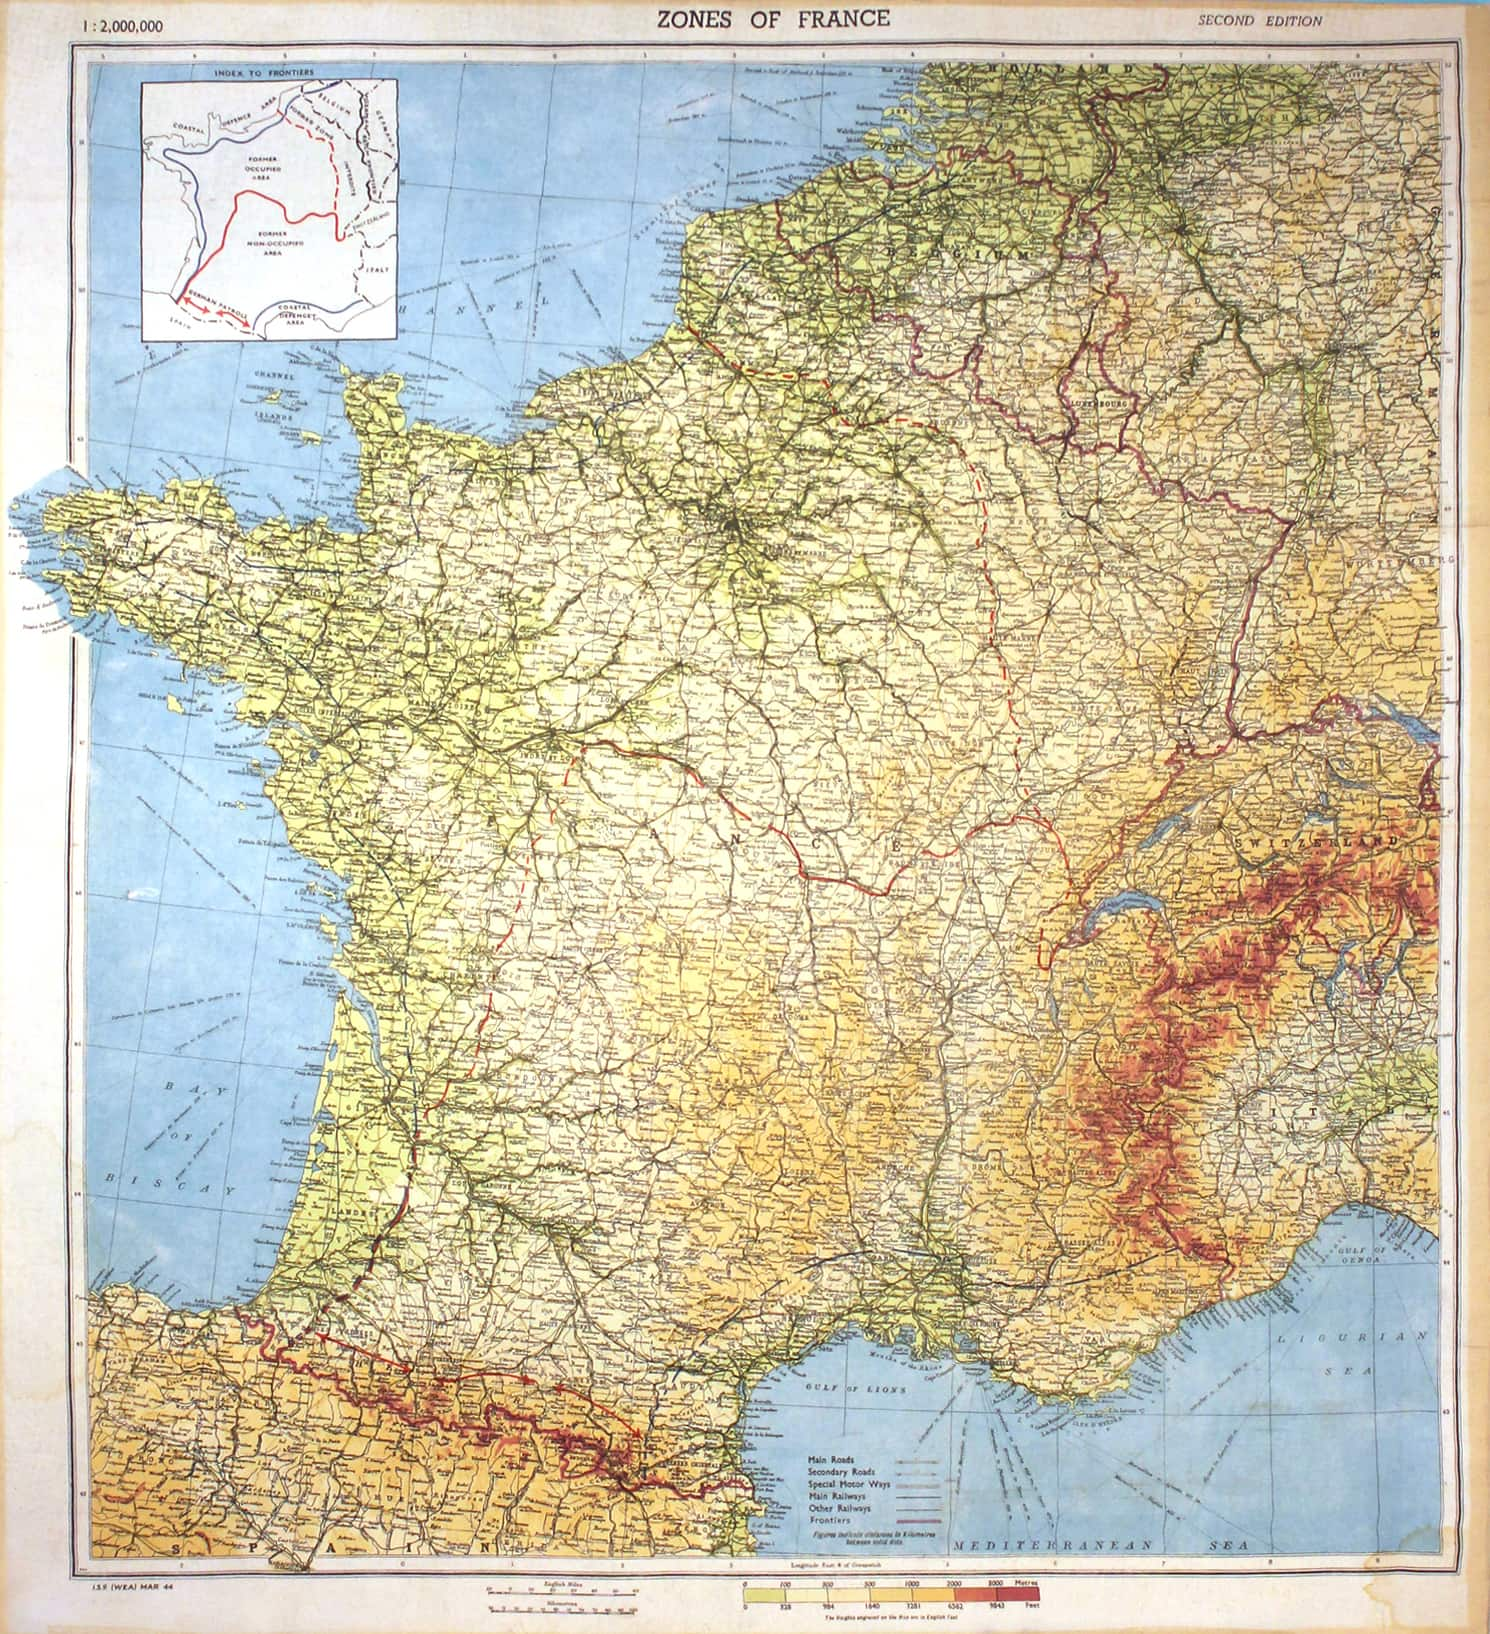 Map Of France Zones.Zones Of France World War Ii Silk Escape Map Library Trust Fund